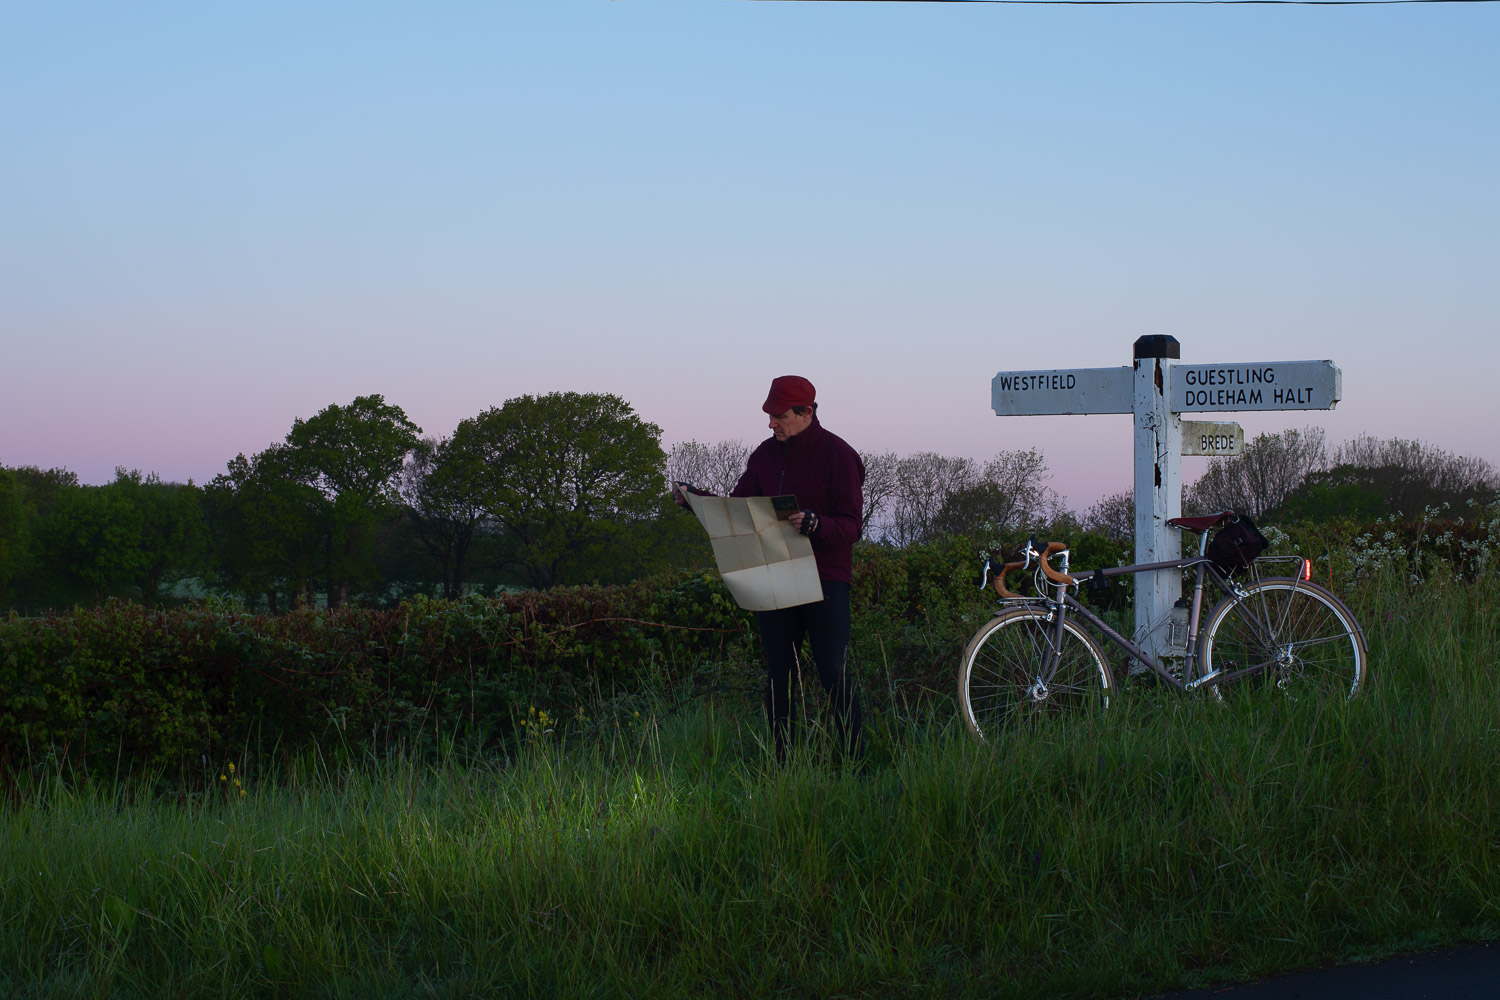 Cyclist consulting map by old wooden signpost